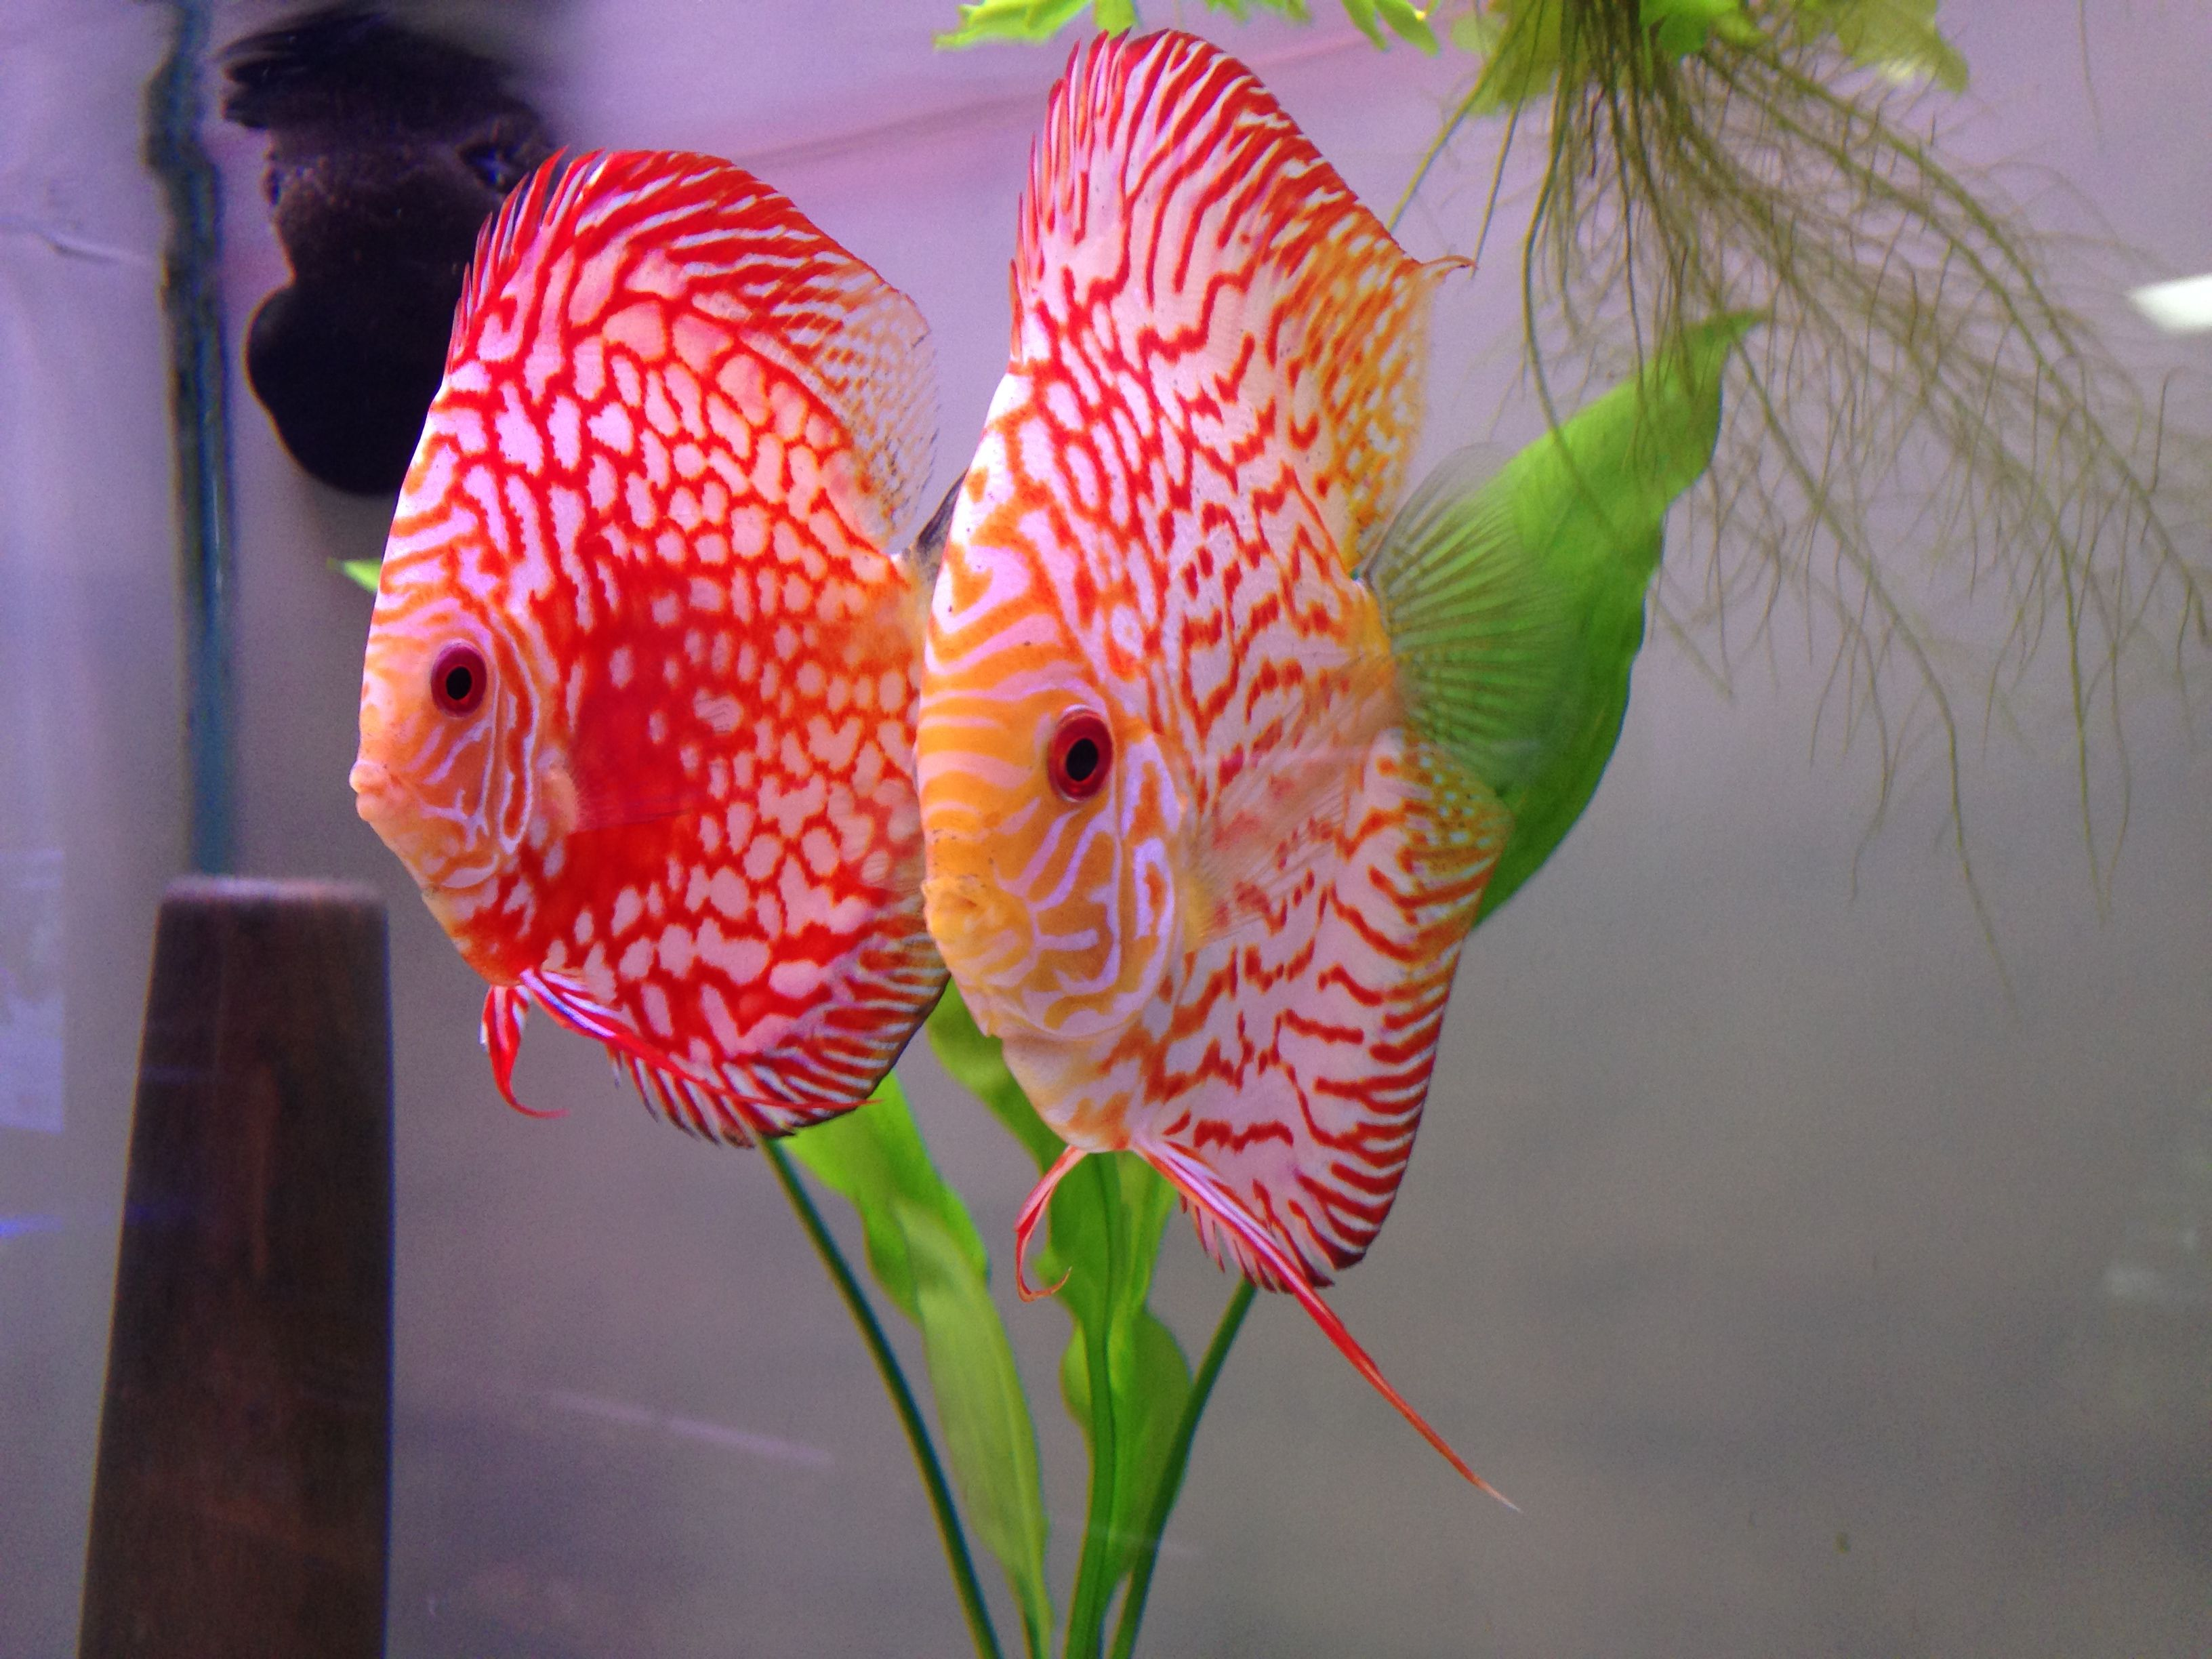 Rare Discus Fish | discus fish are belong to a family of fish known ...